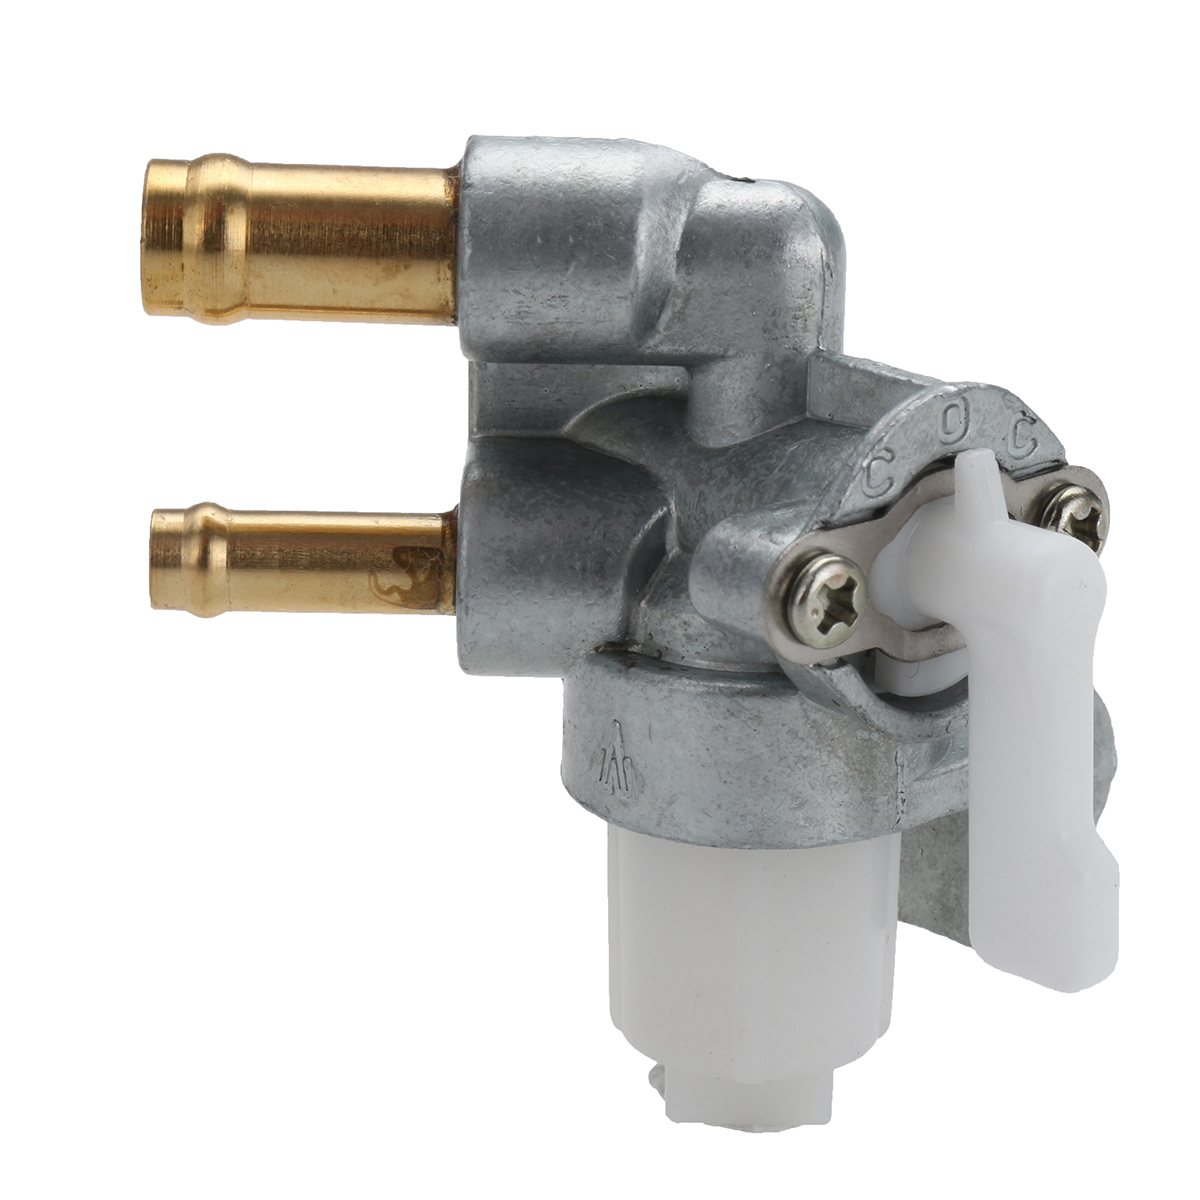 Fuel Shut Off Valve For Briggs Stratton 716111 4 55 9hp Vanguard Filter Engines In Tanks From Automobiles Motorcycles On Alibaba Group